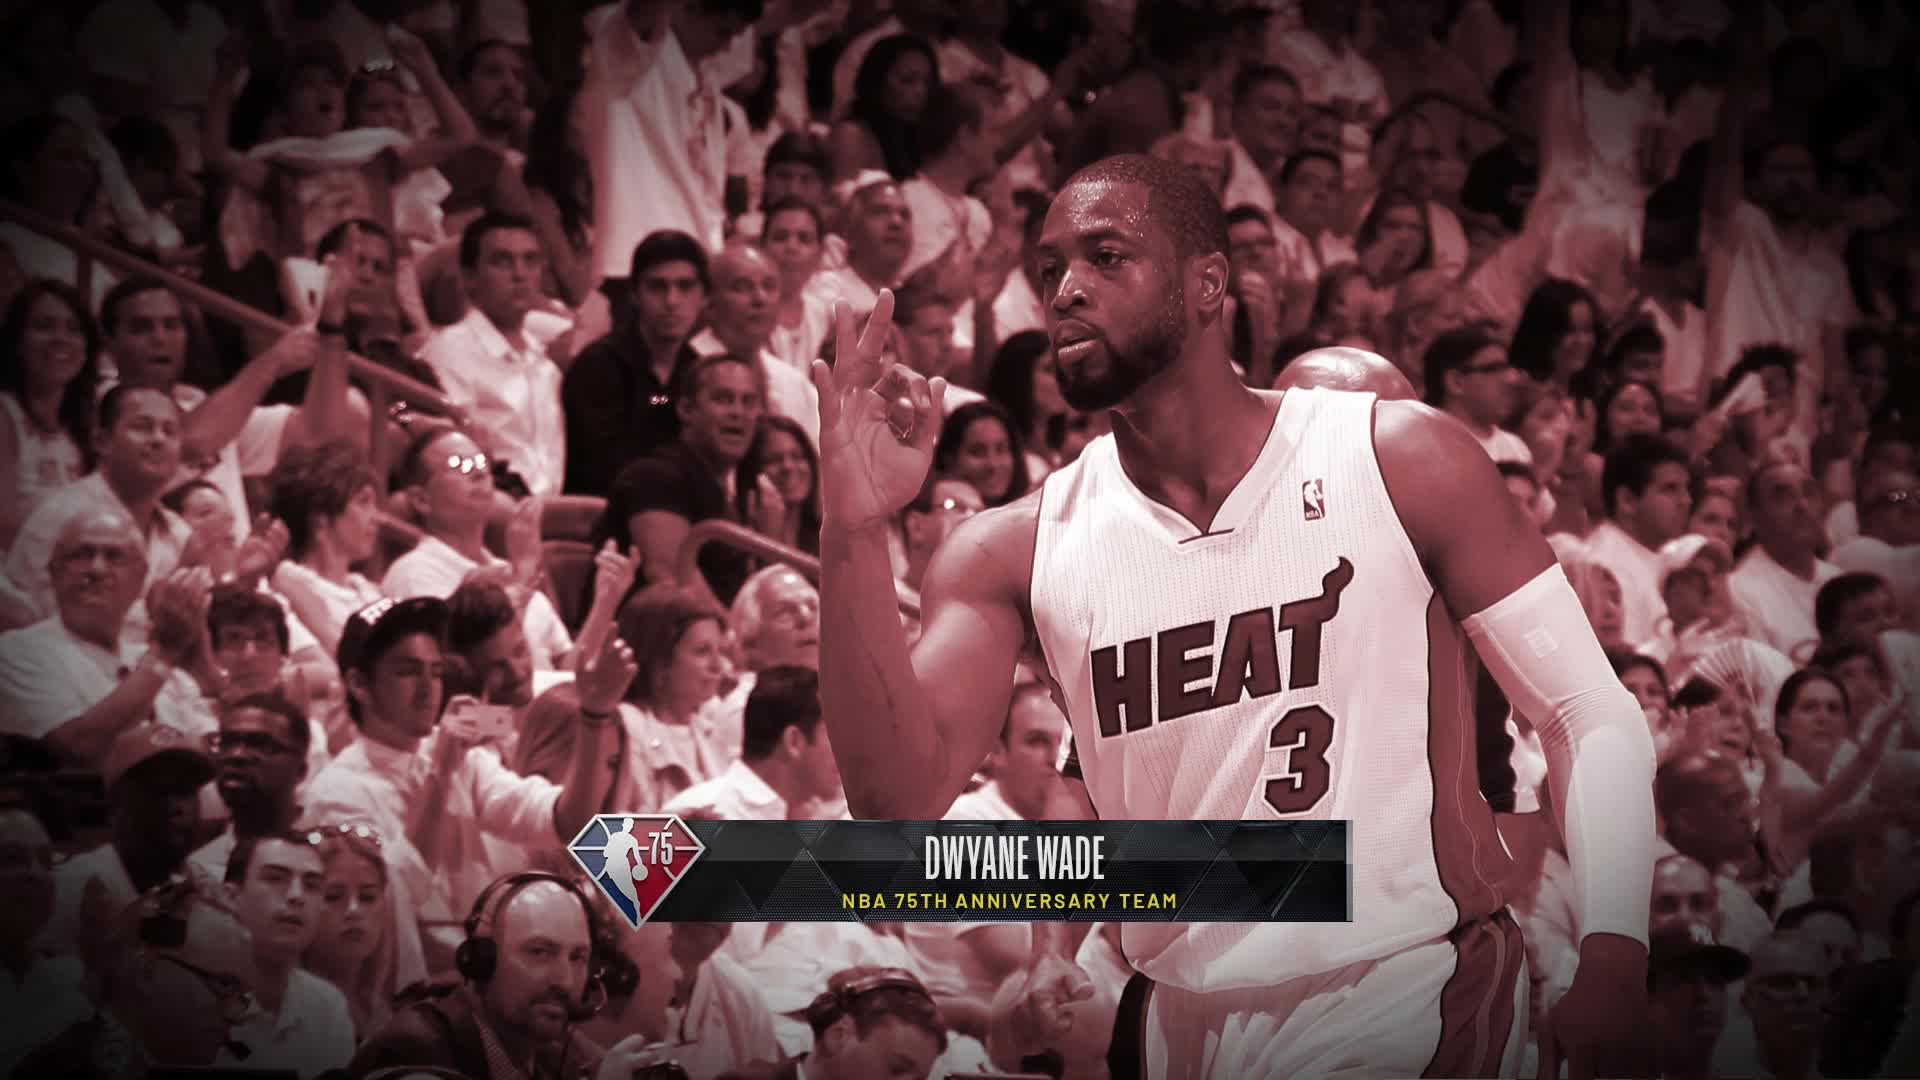 Dwyane Wade reacts to being added to 75 team